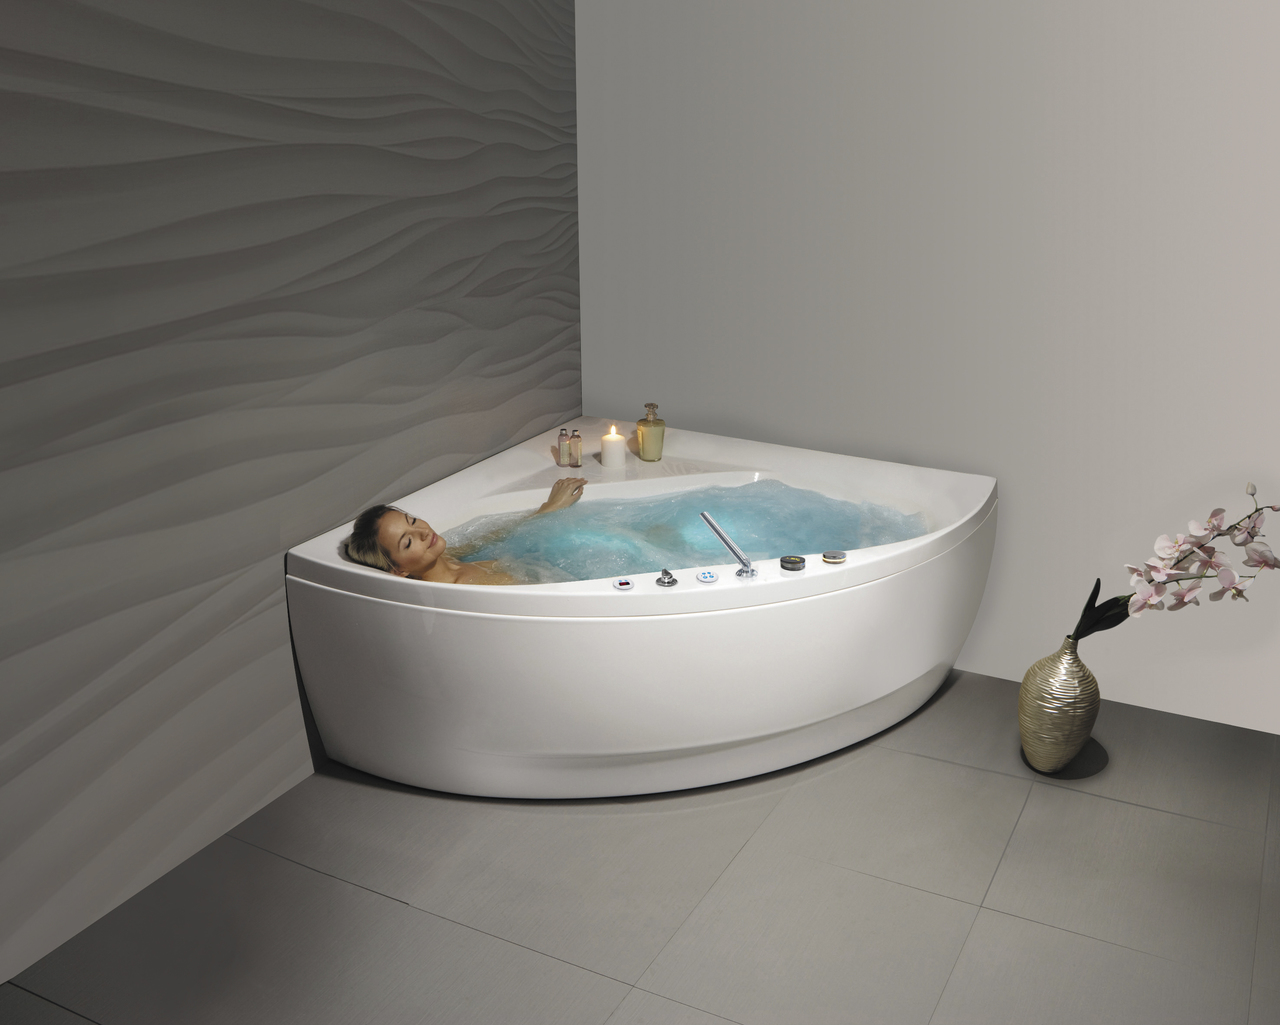 Aquatica Olivia-Wht HydroRelax Jetted Bathtub (US version 110V/60Hz)